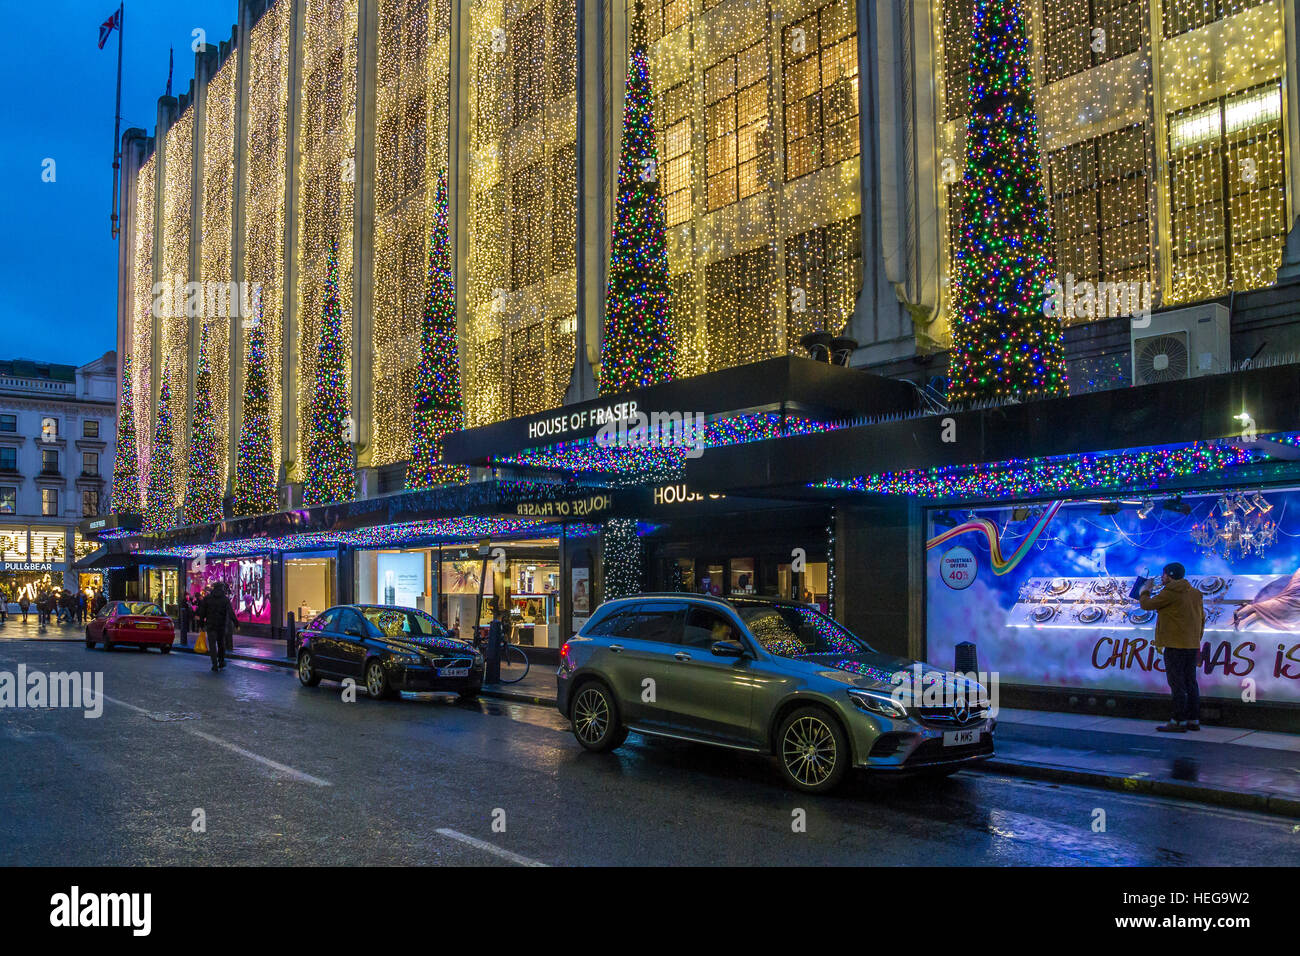 The entrance to  The House Of Fraser ,Oxford St at Christmas time Christmas Lights ,London - Stock Image